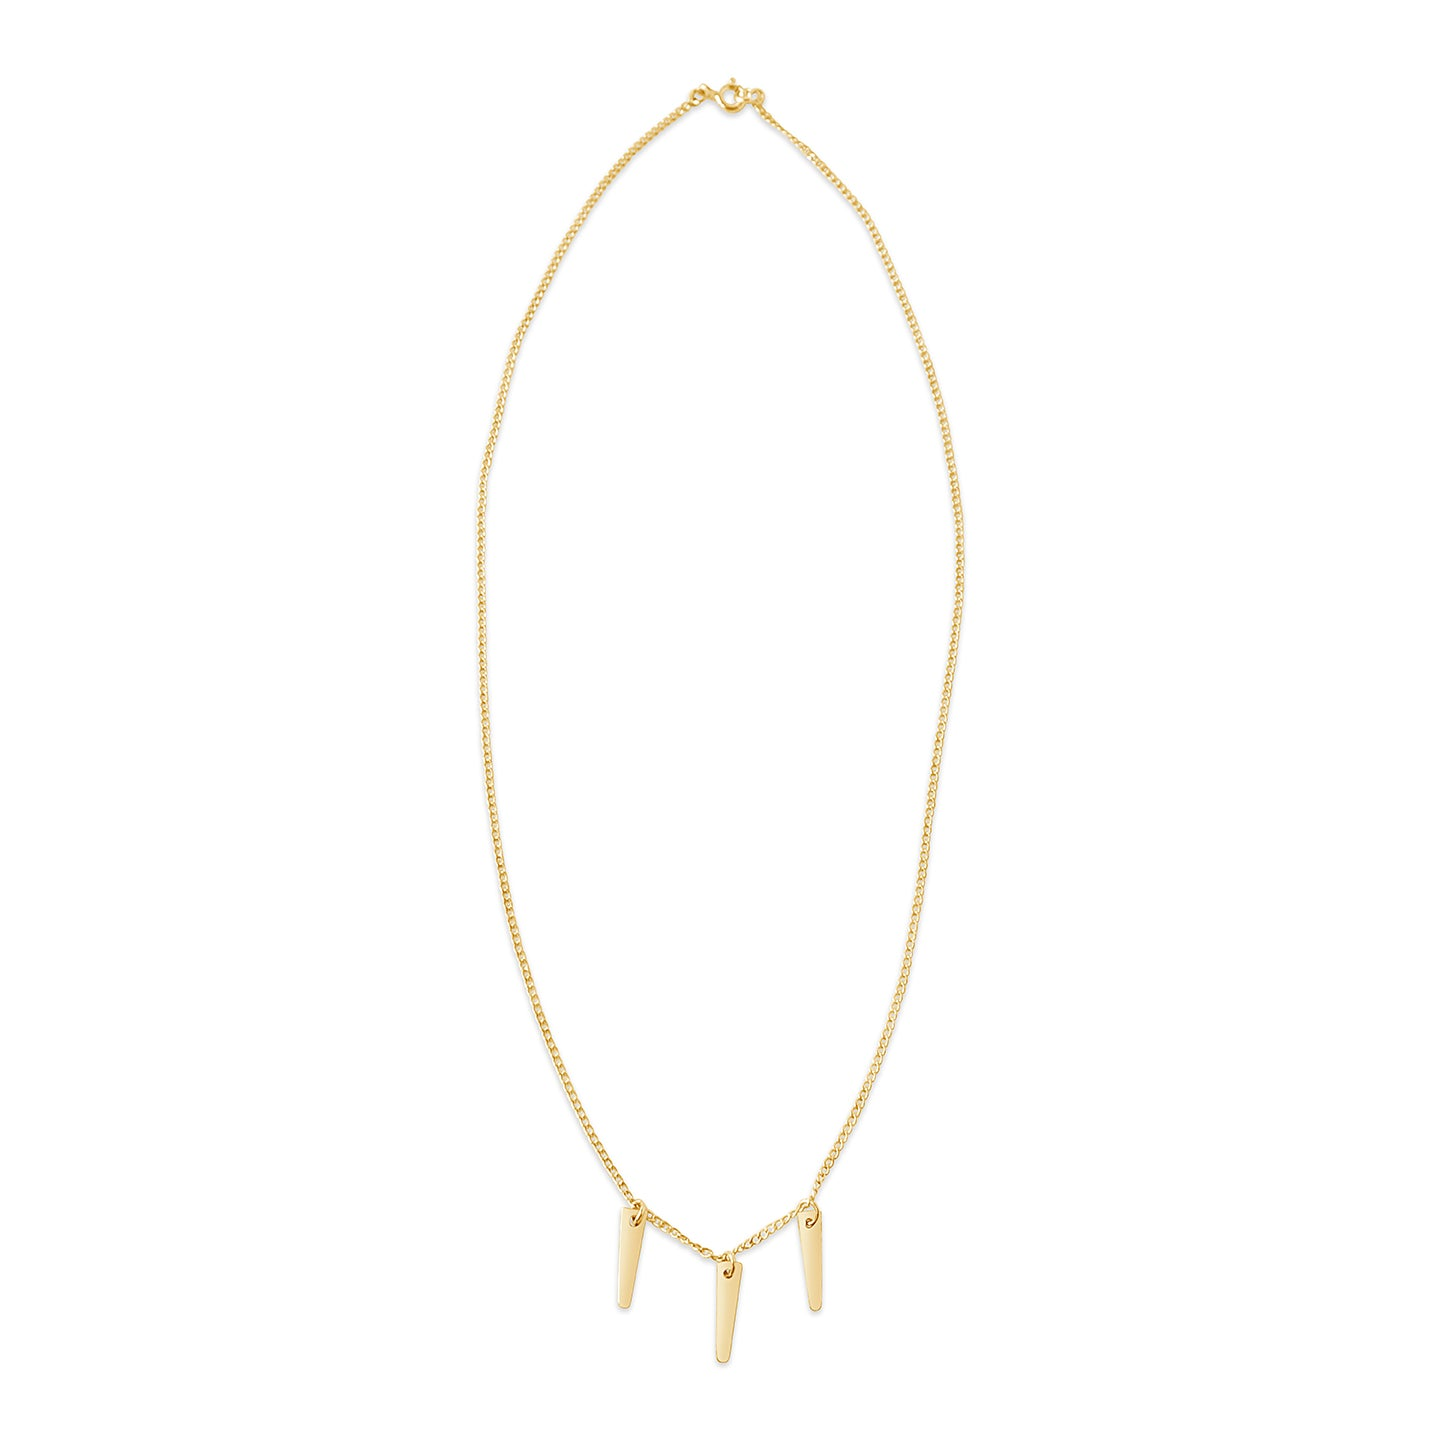 spike necklace in gold for sale by glamrocks jewelry